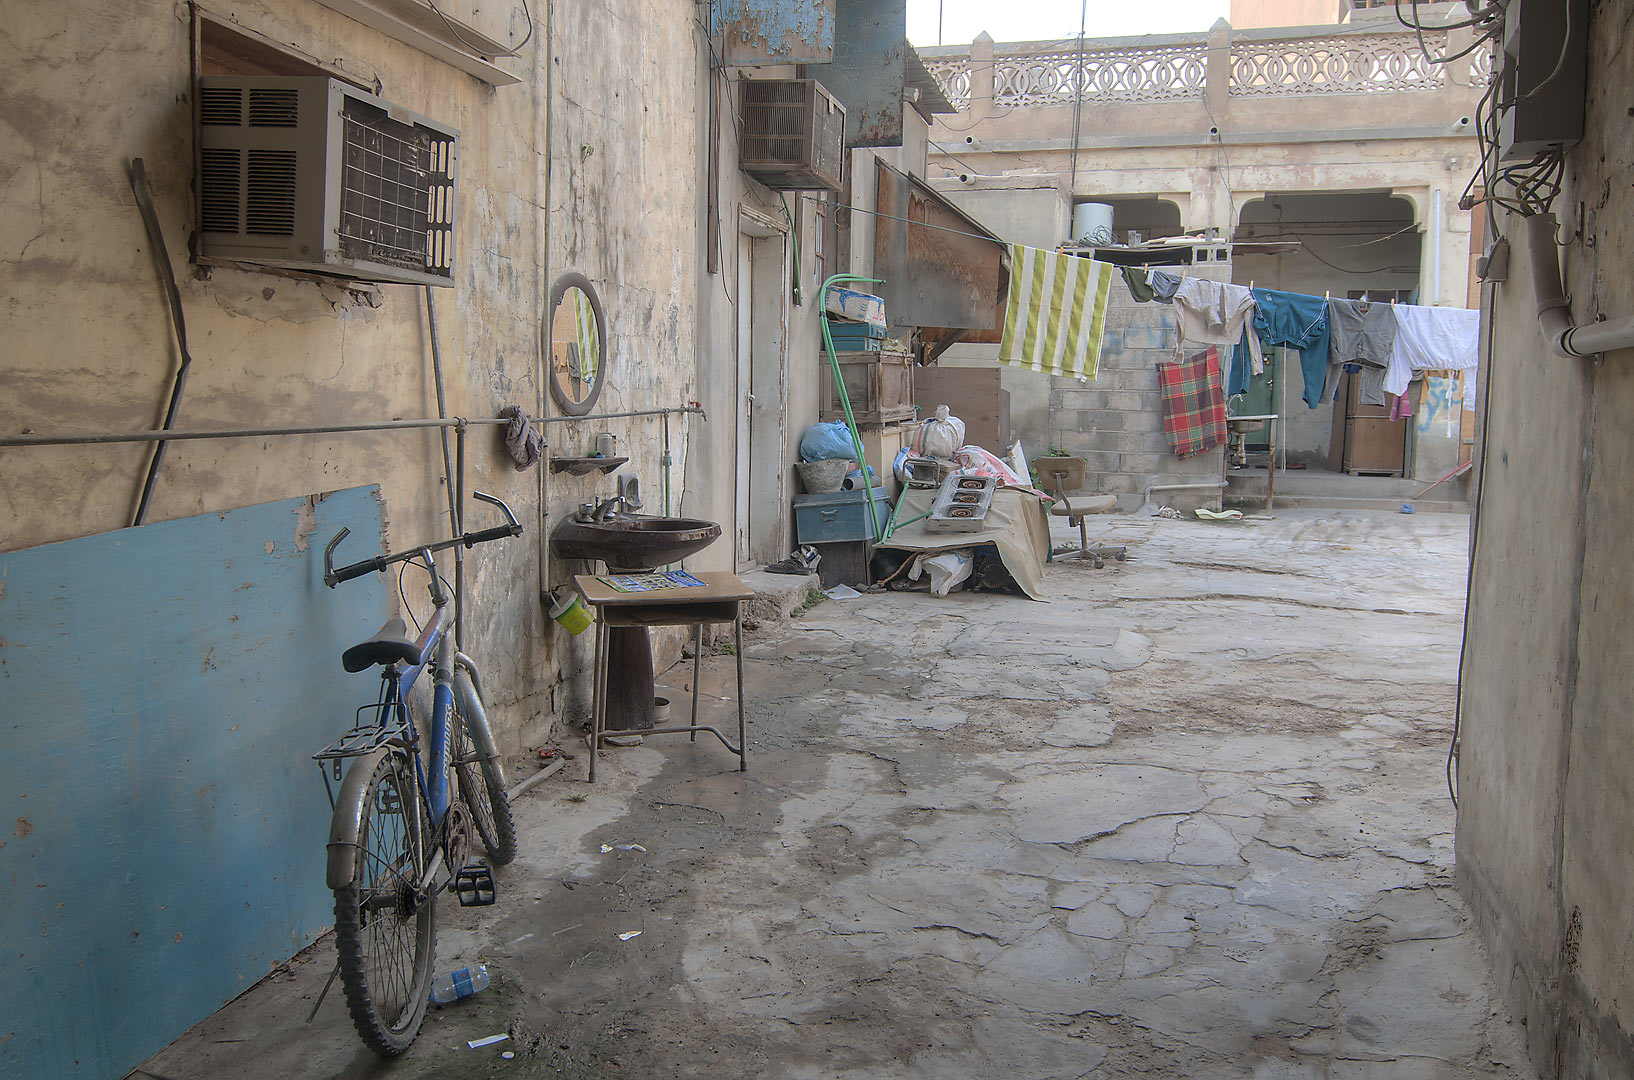 Courtyard in Umm Wishah St. in Musheirib area. Doha, Qatar